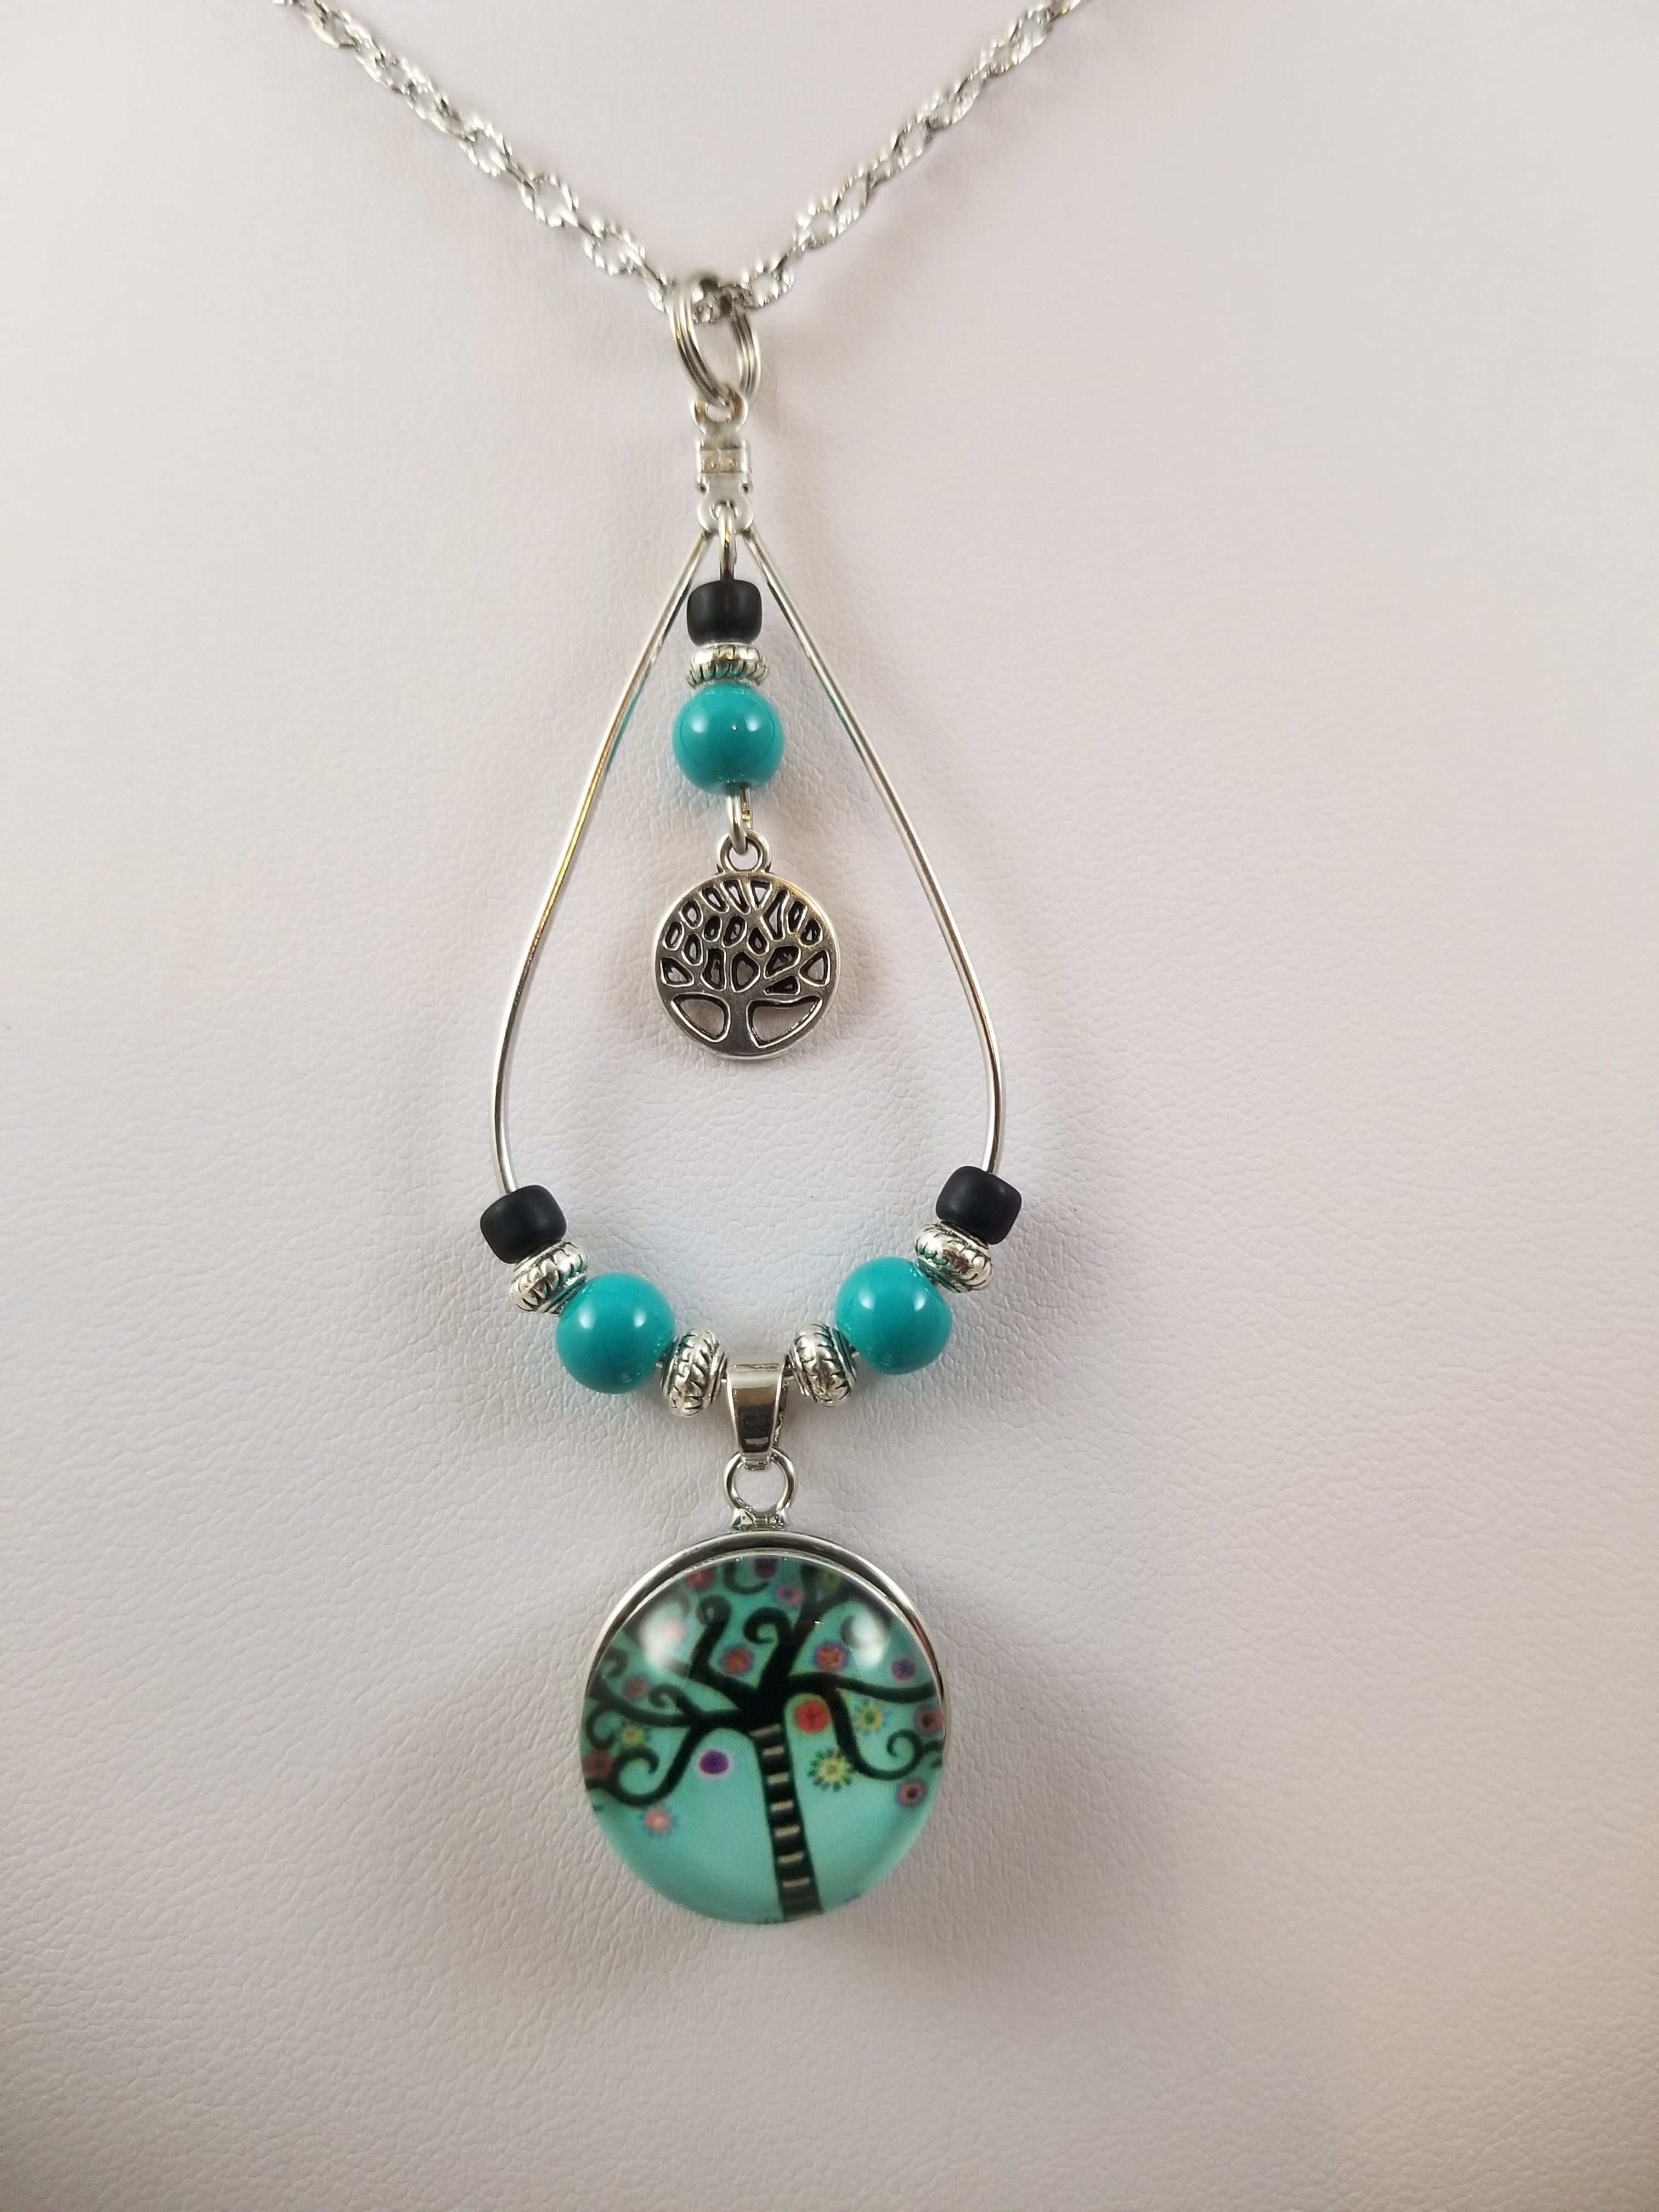 Aqua Tree Simply Charming Necklace